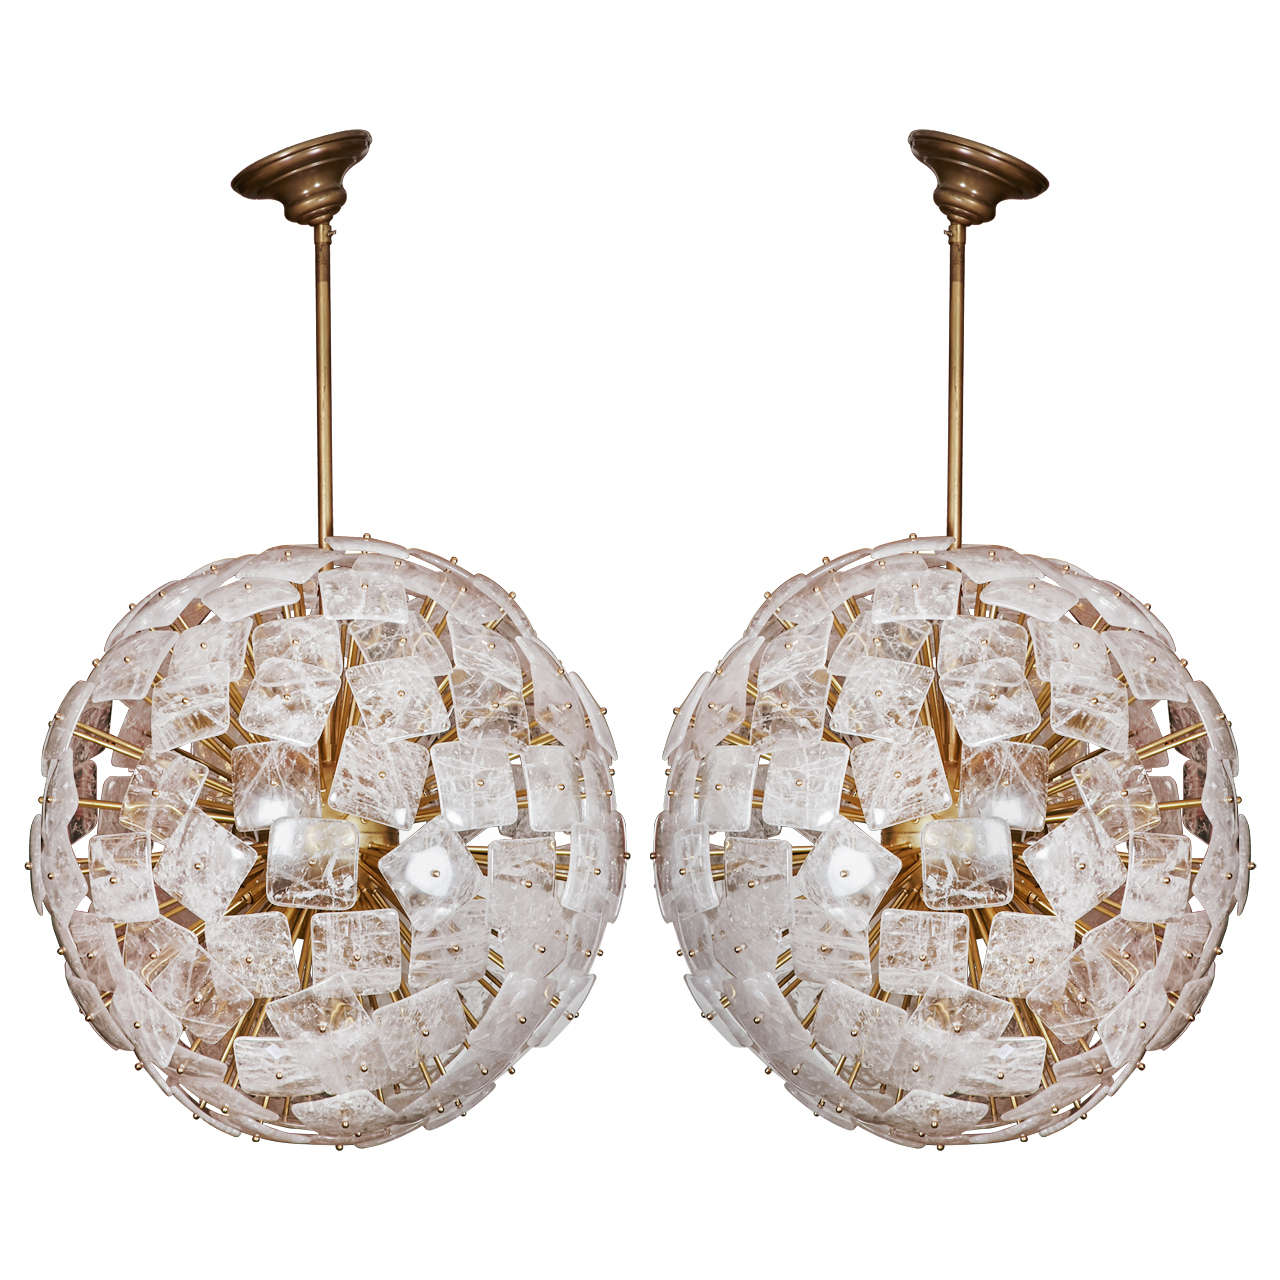 Fantastic Pair Of Rock Crystal Chandeliers 1